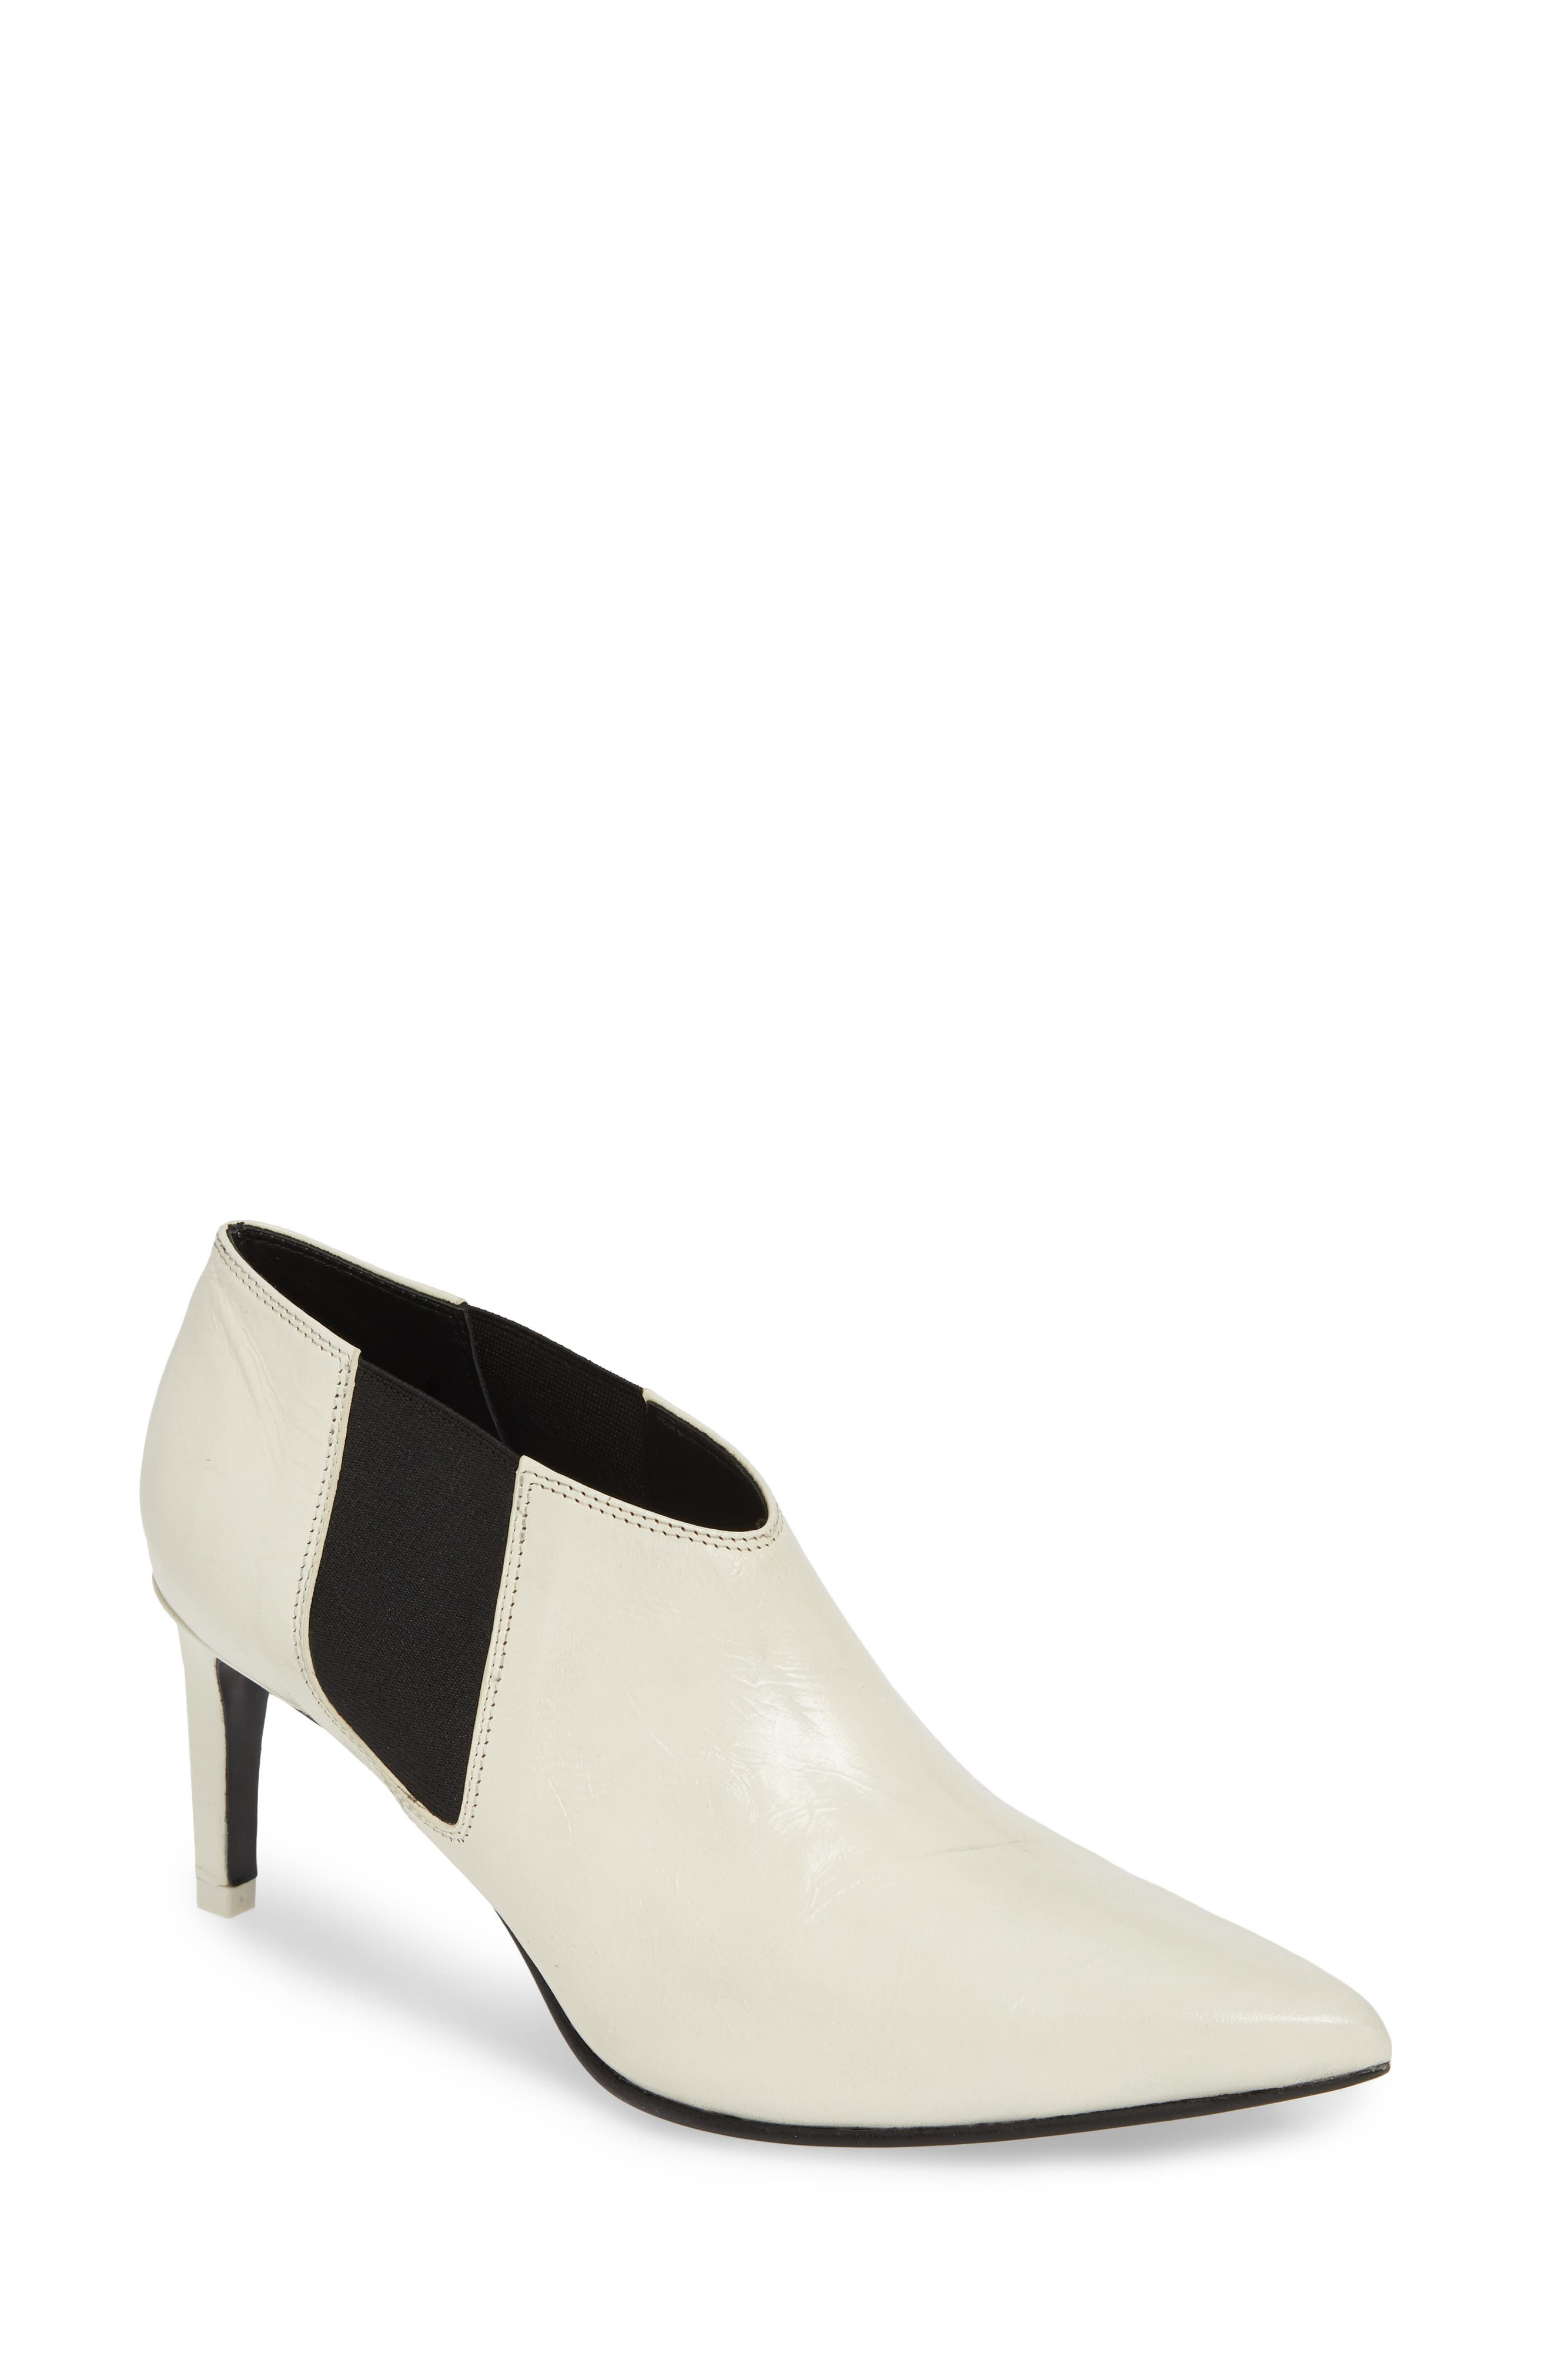 Rag & Bone Beha Chelsea Boot - White